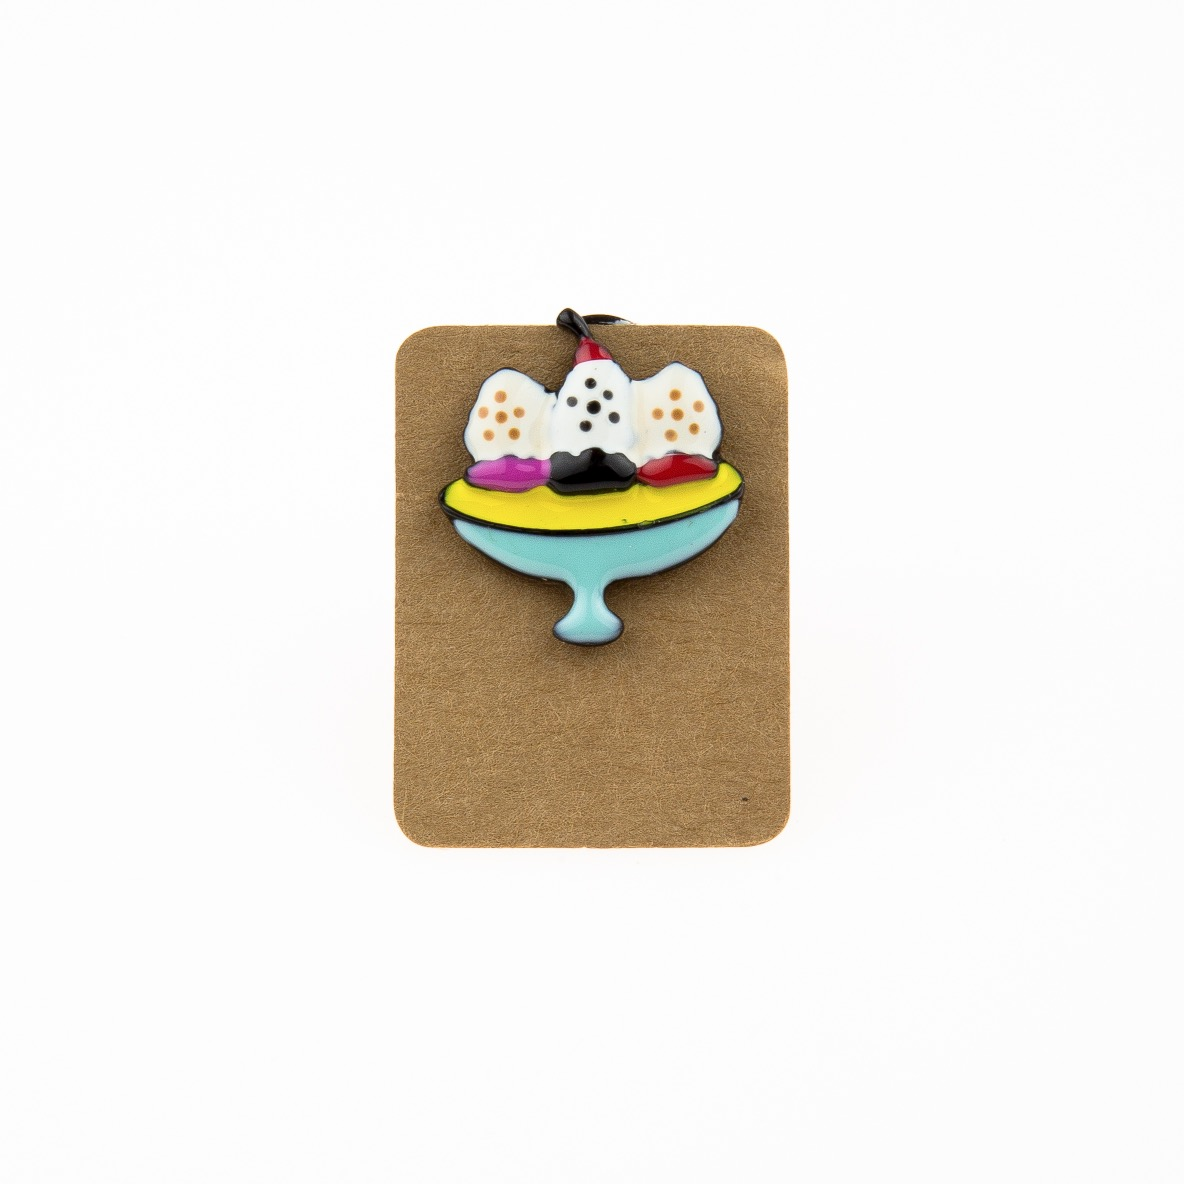 Metal Tea Time Cakes Enamel Pin Badge